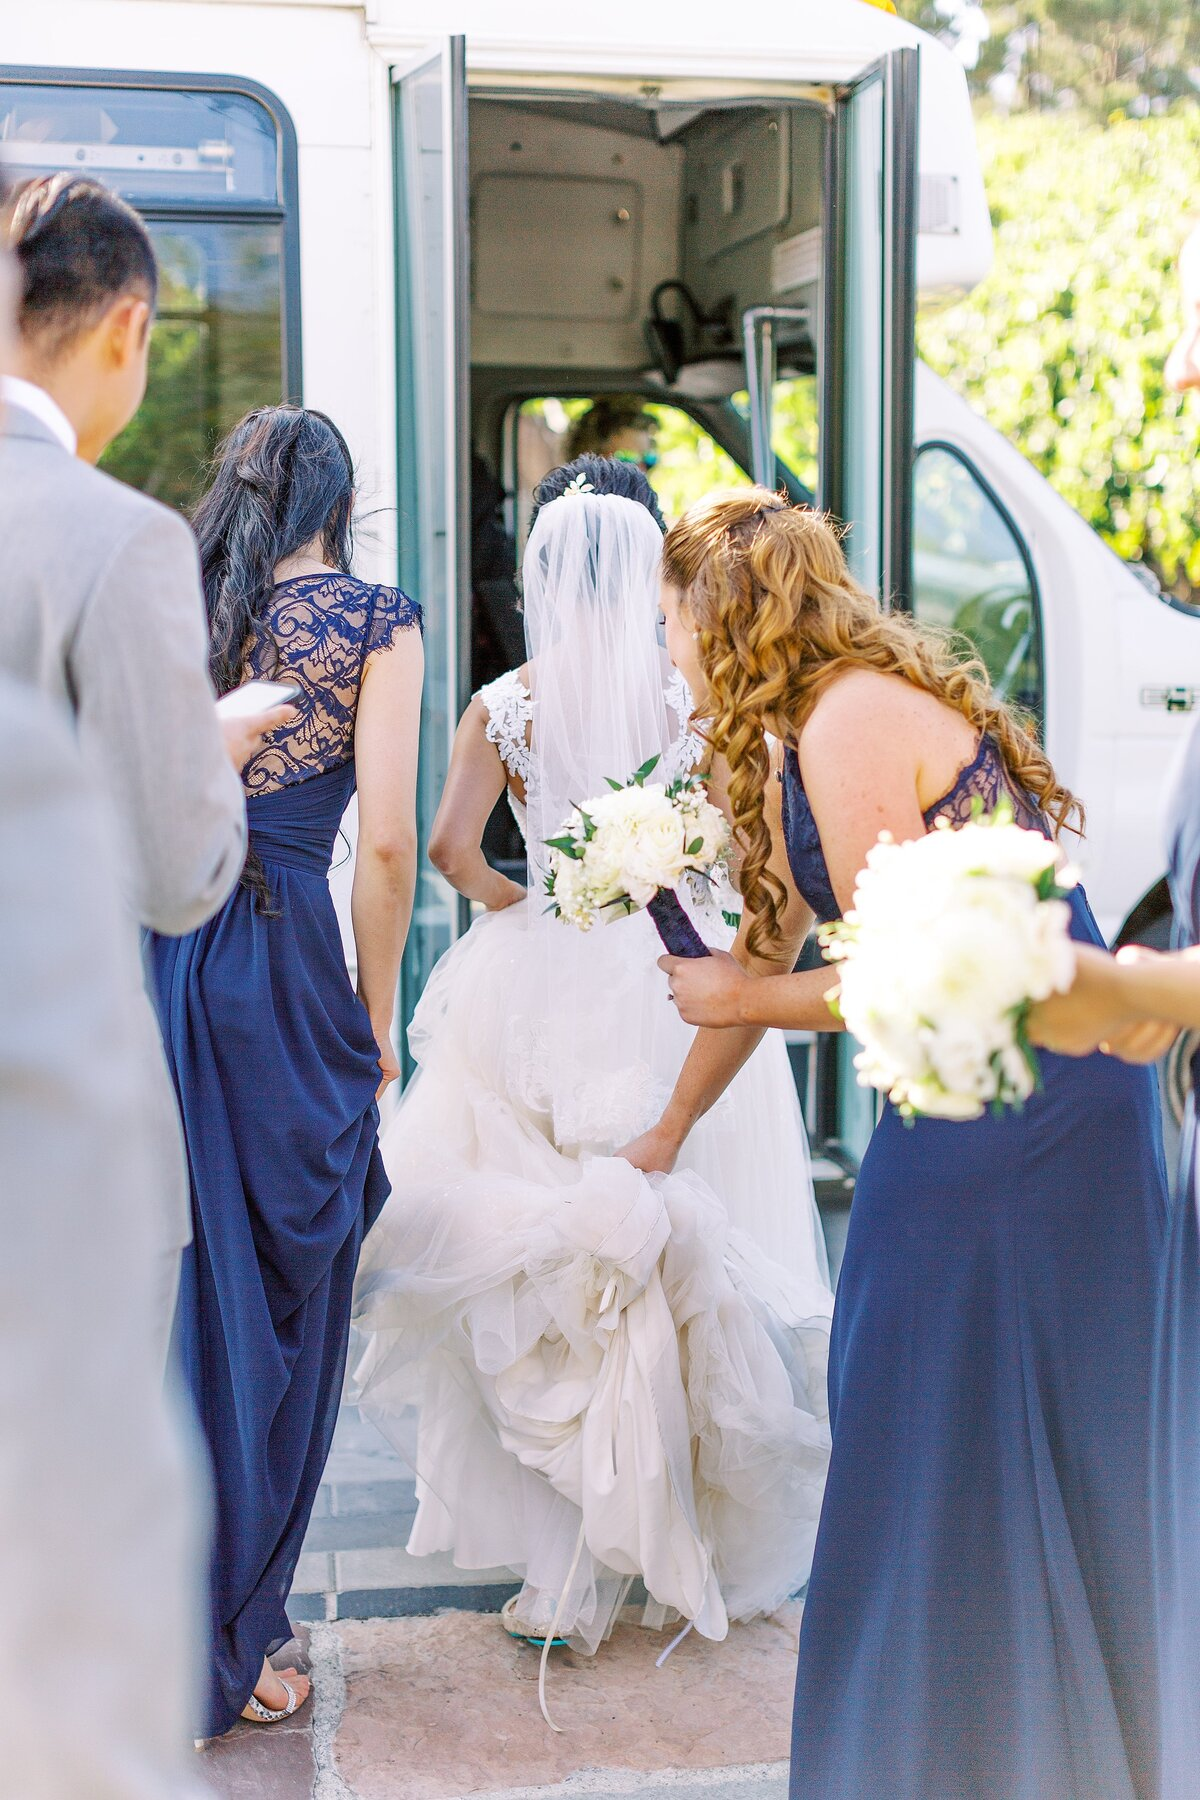 20190928Cammane and Simon's Vineyard Wedding_Nella Terra Cellars_Sunol_Bethany Picone Photography - 098_WEB